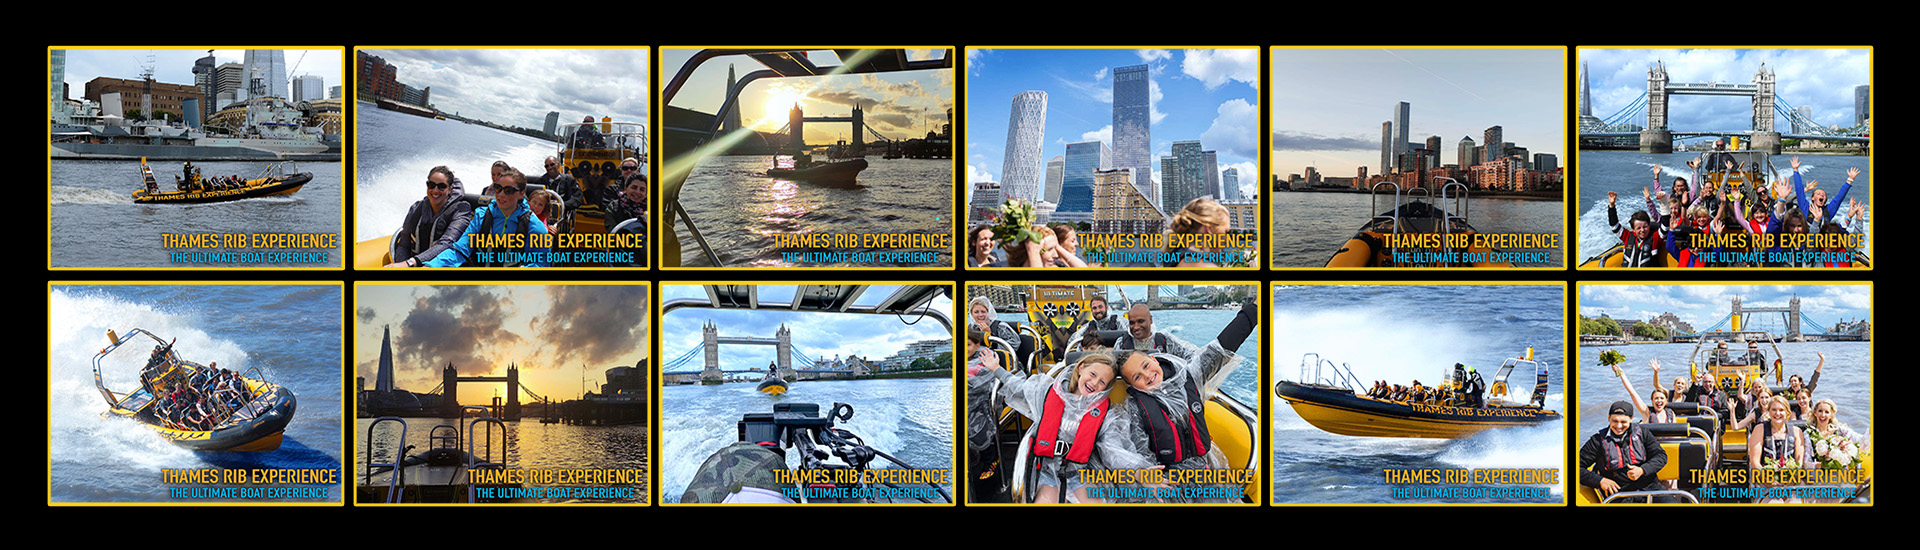 About Thames RIB Experience